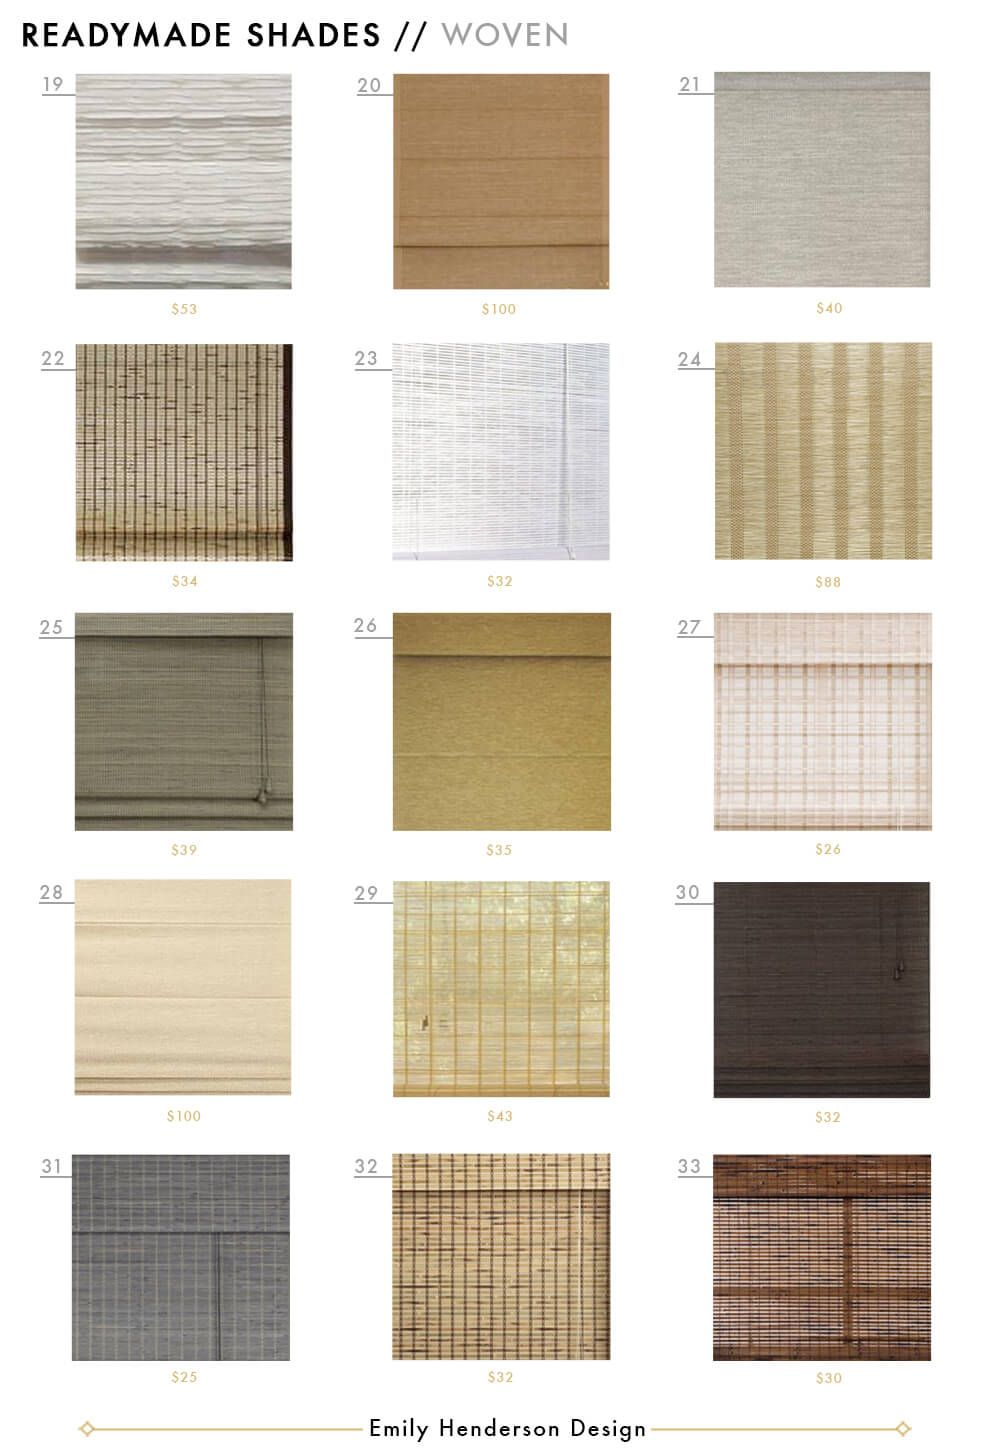 48 Affordable Ready Made Woven Window Shades To Fit Most Standard Widows